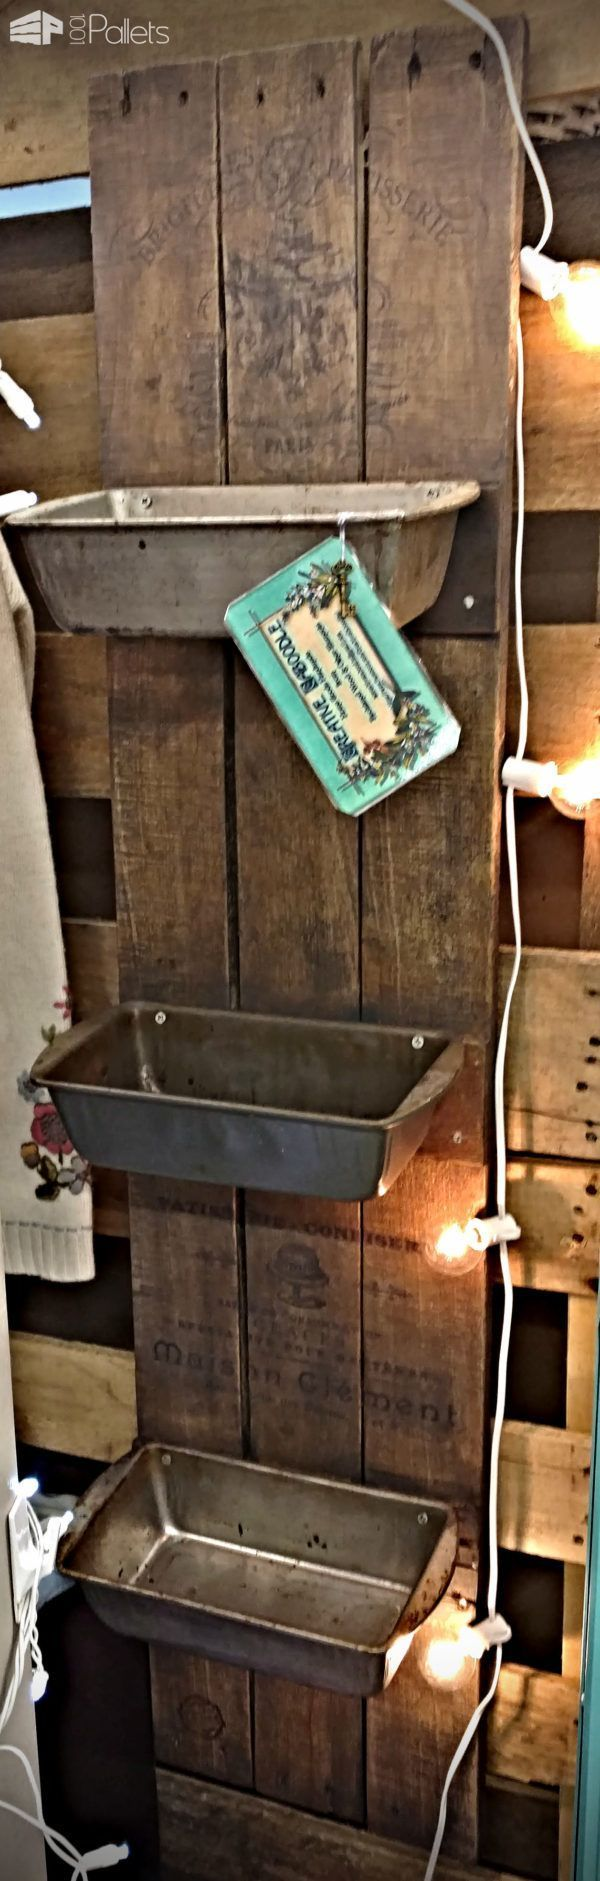 #Kitchen, #PalletHomeDecor, #PalletShelf I wanted to create something a little different, so I made these Farmhouse-Style French Bakery Motif Pallet Wall Bins. They were easy but time-consuming with the aging processes involved.  French Bakery Motif Pallet Wall Bins: Take four boards